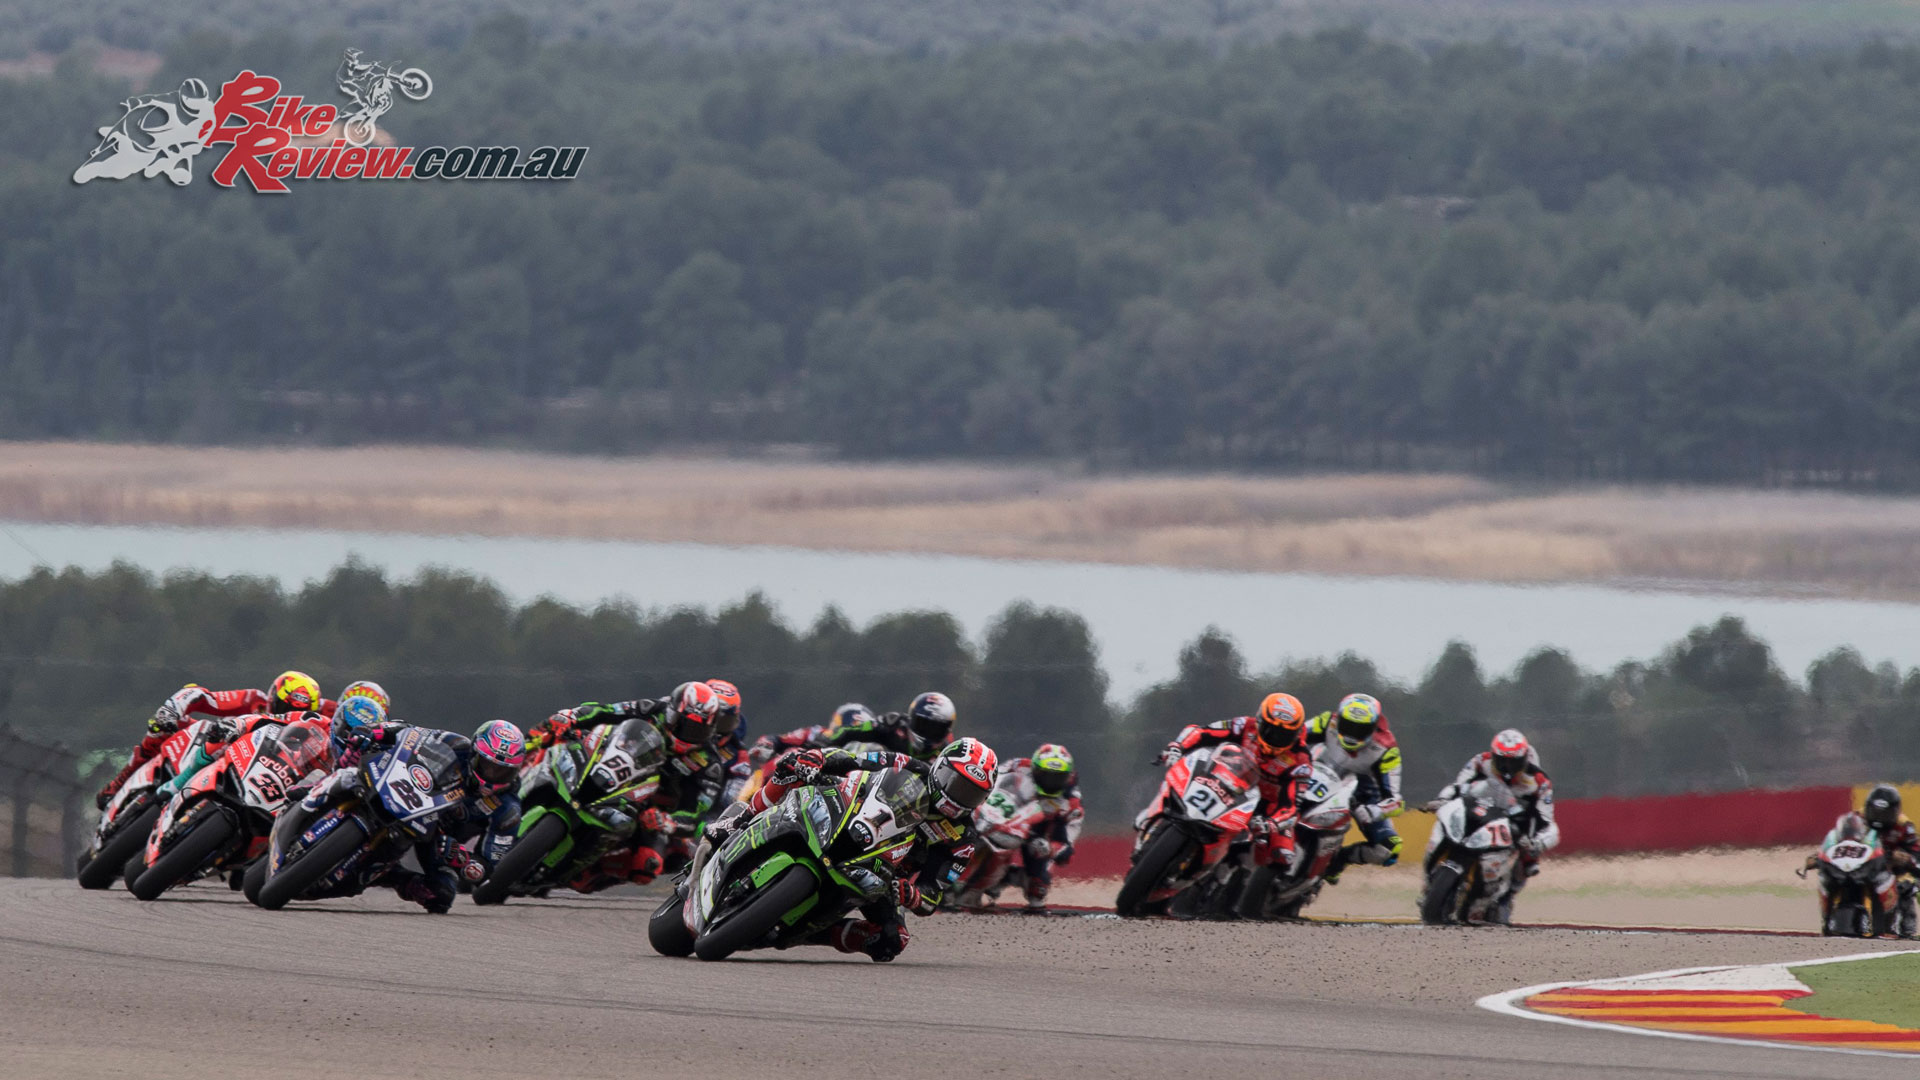 WorldSBK Race 1 - Superbikes - Image by Geebee Images